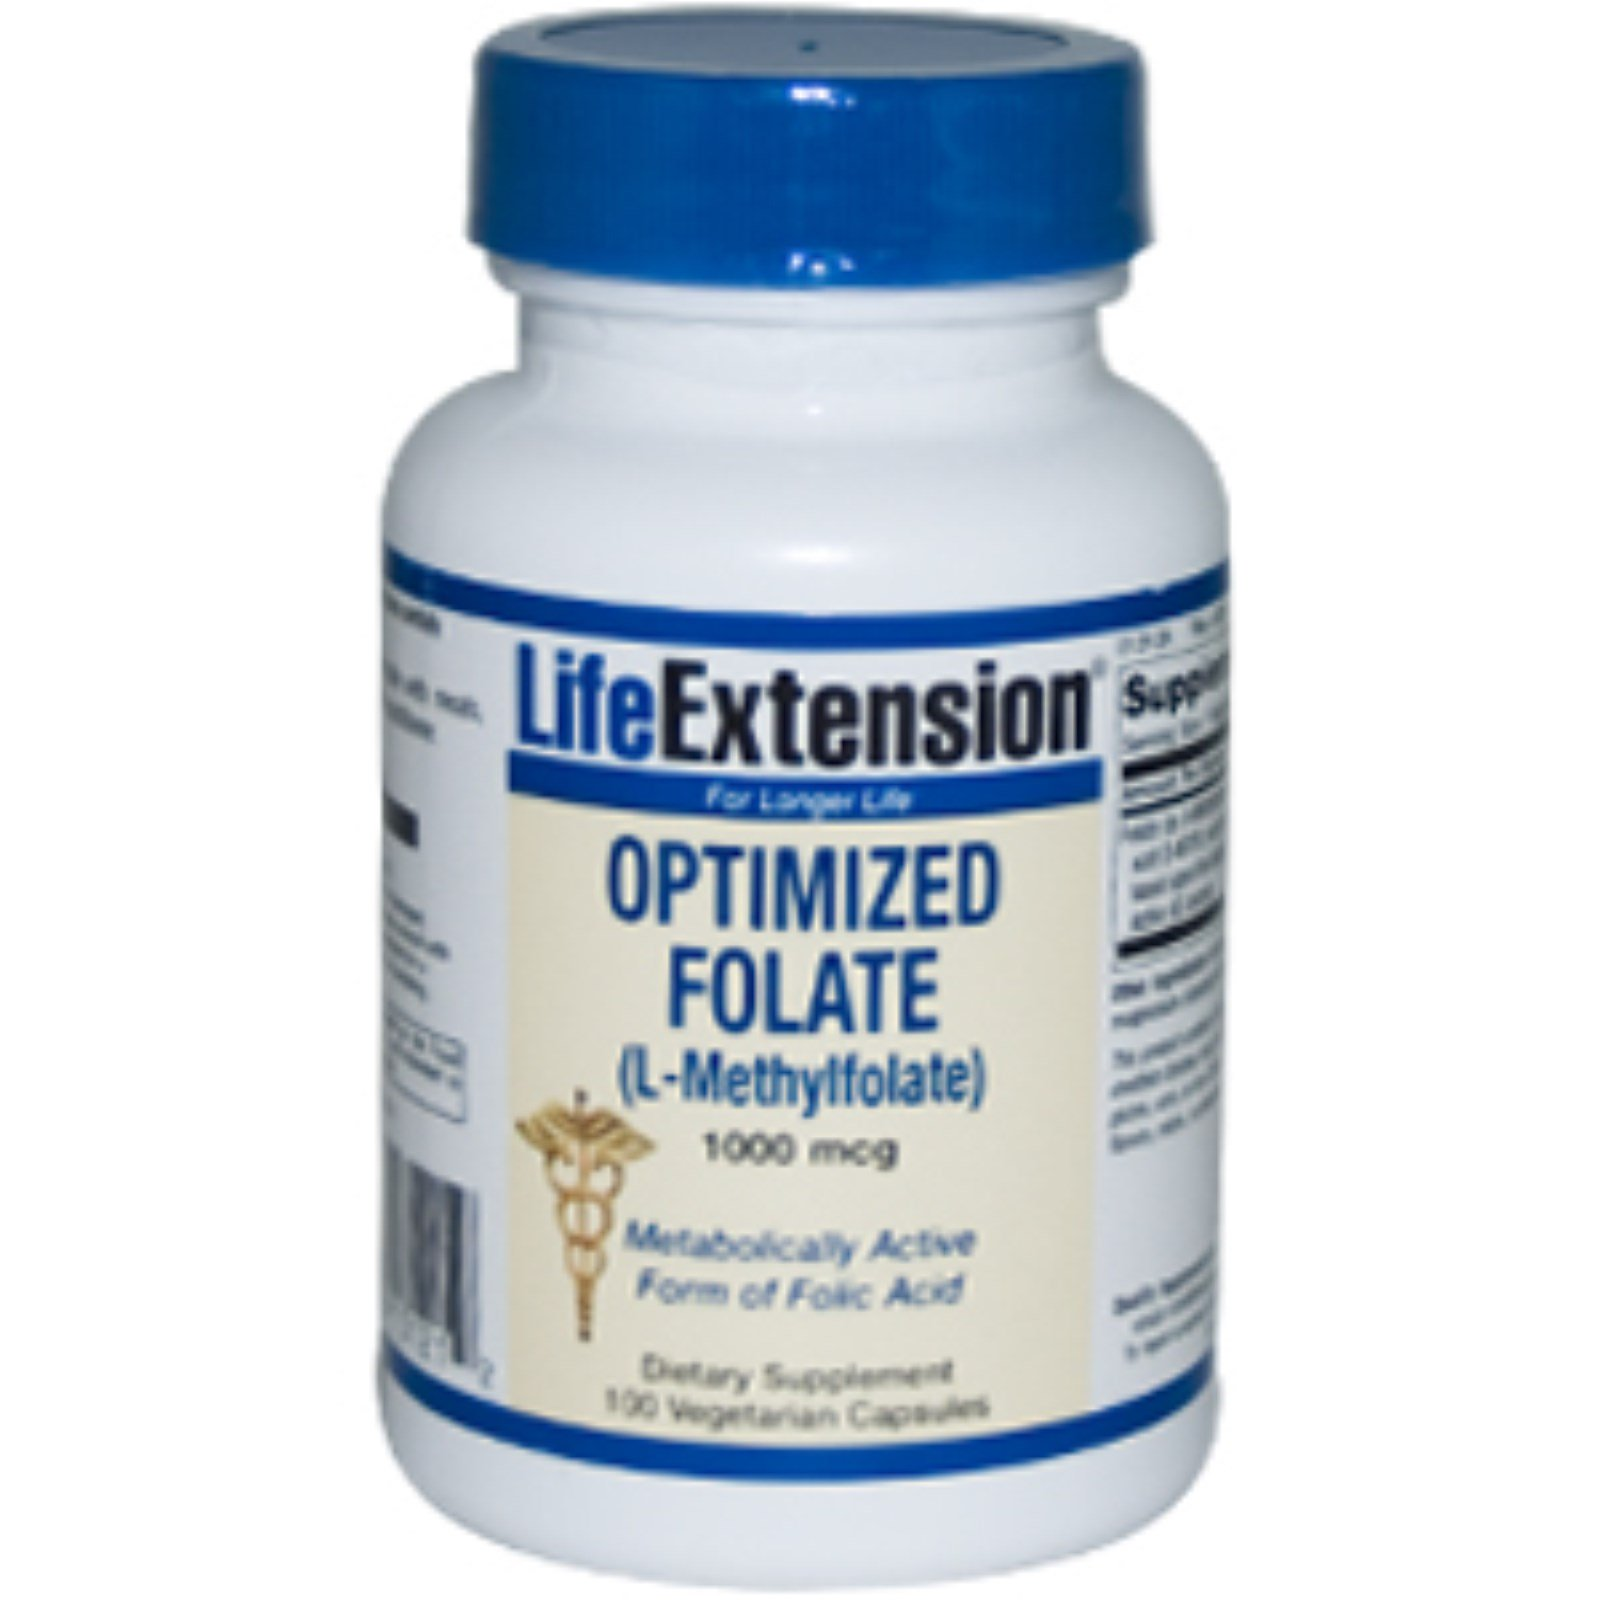 What is l methylfolate